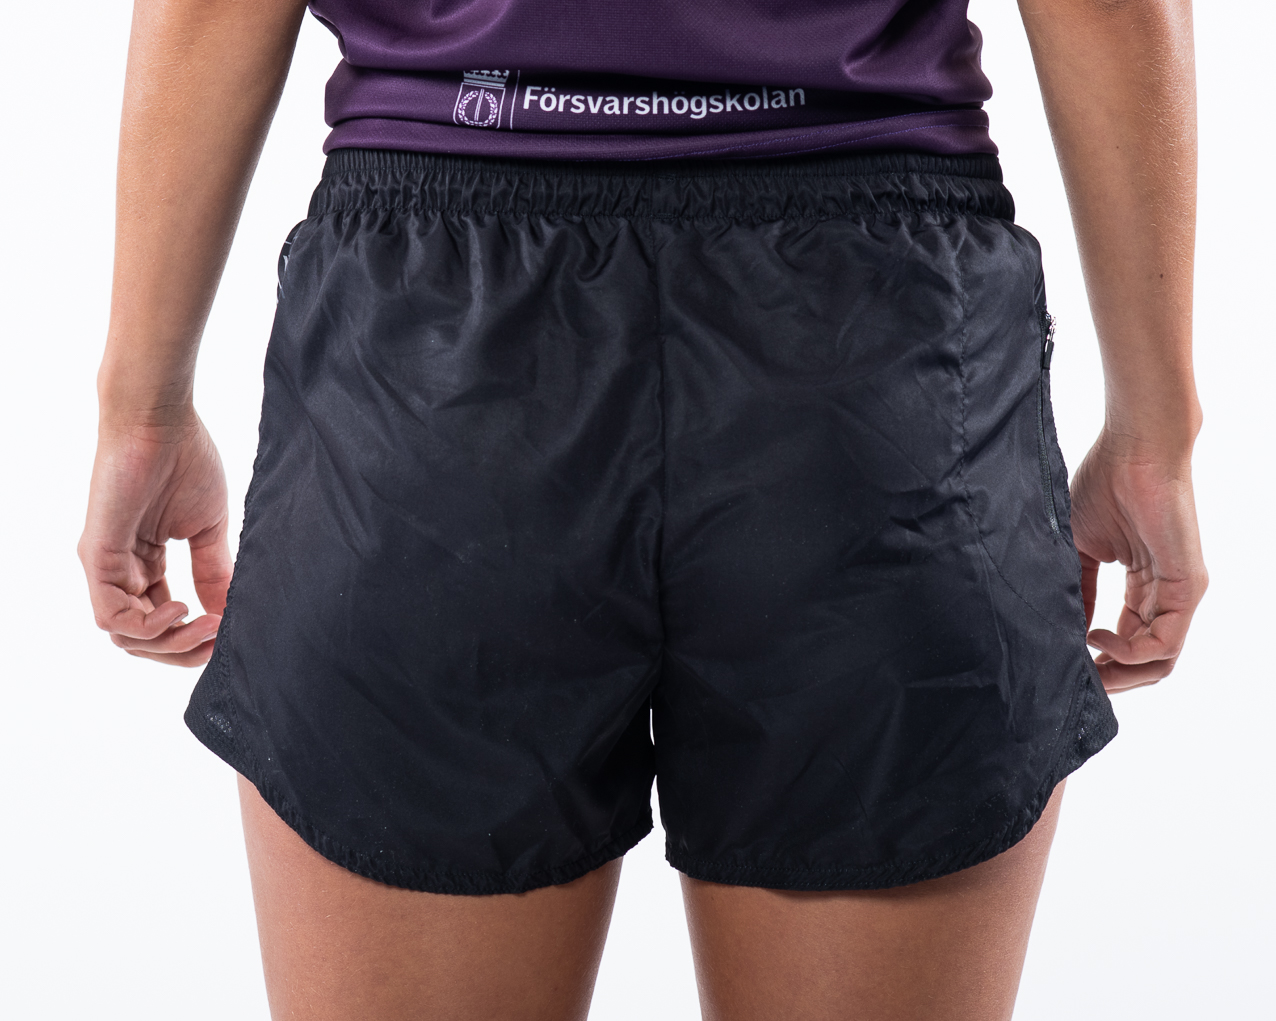 Women's shorts, back